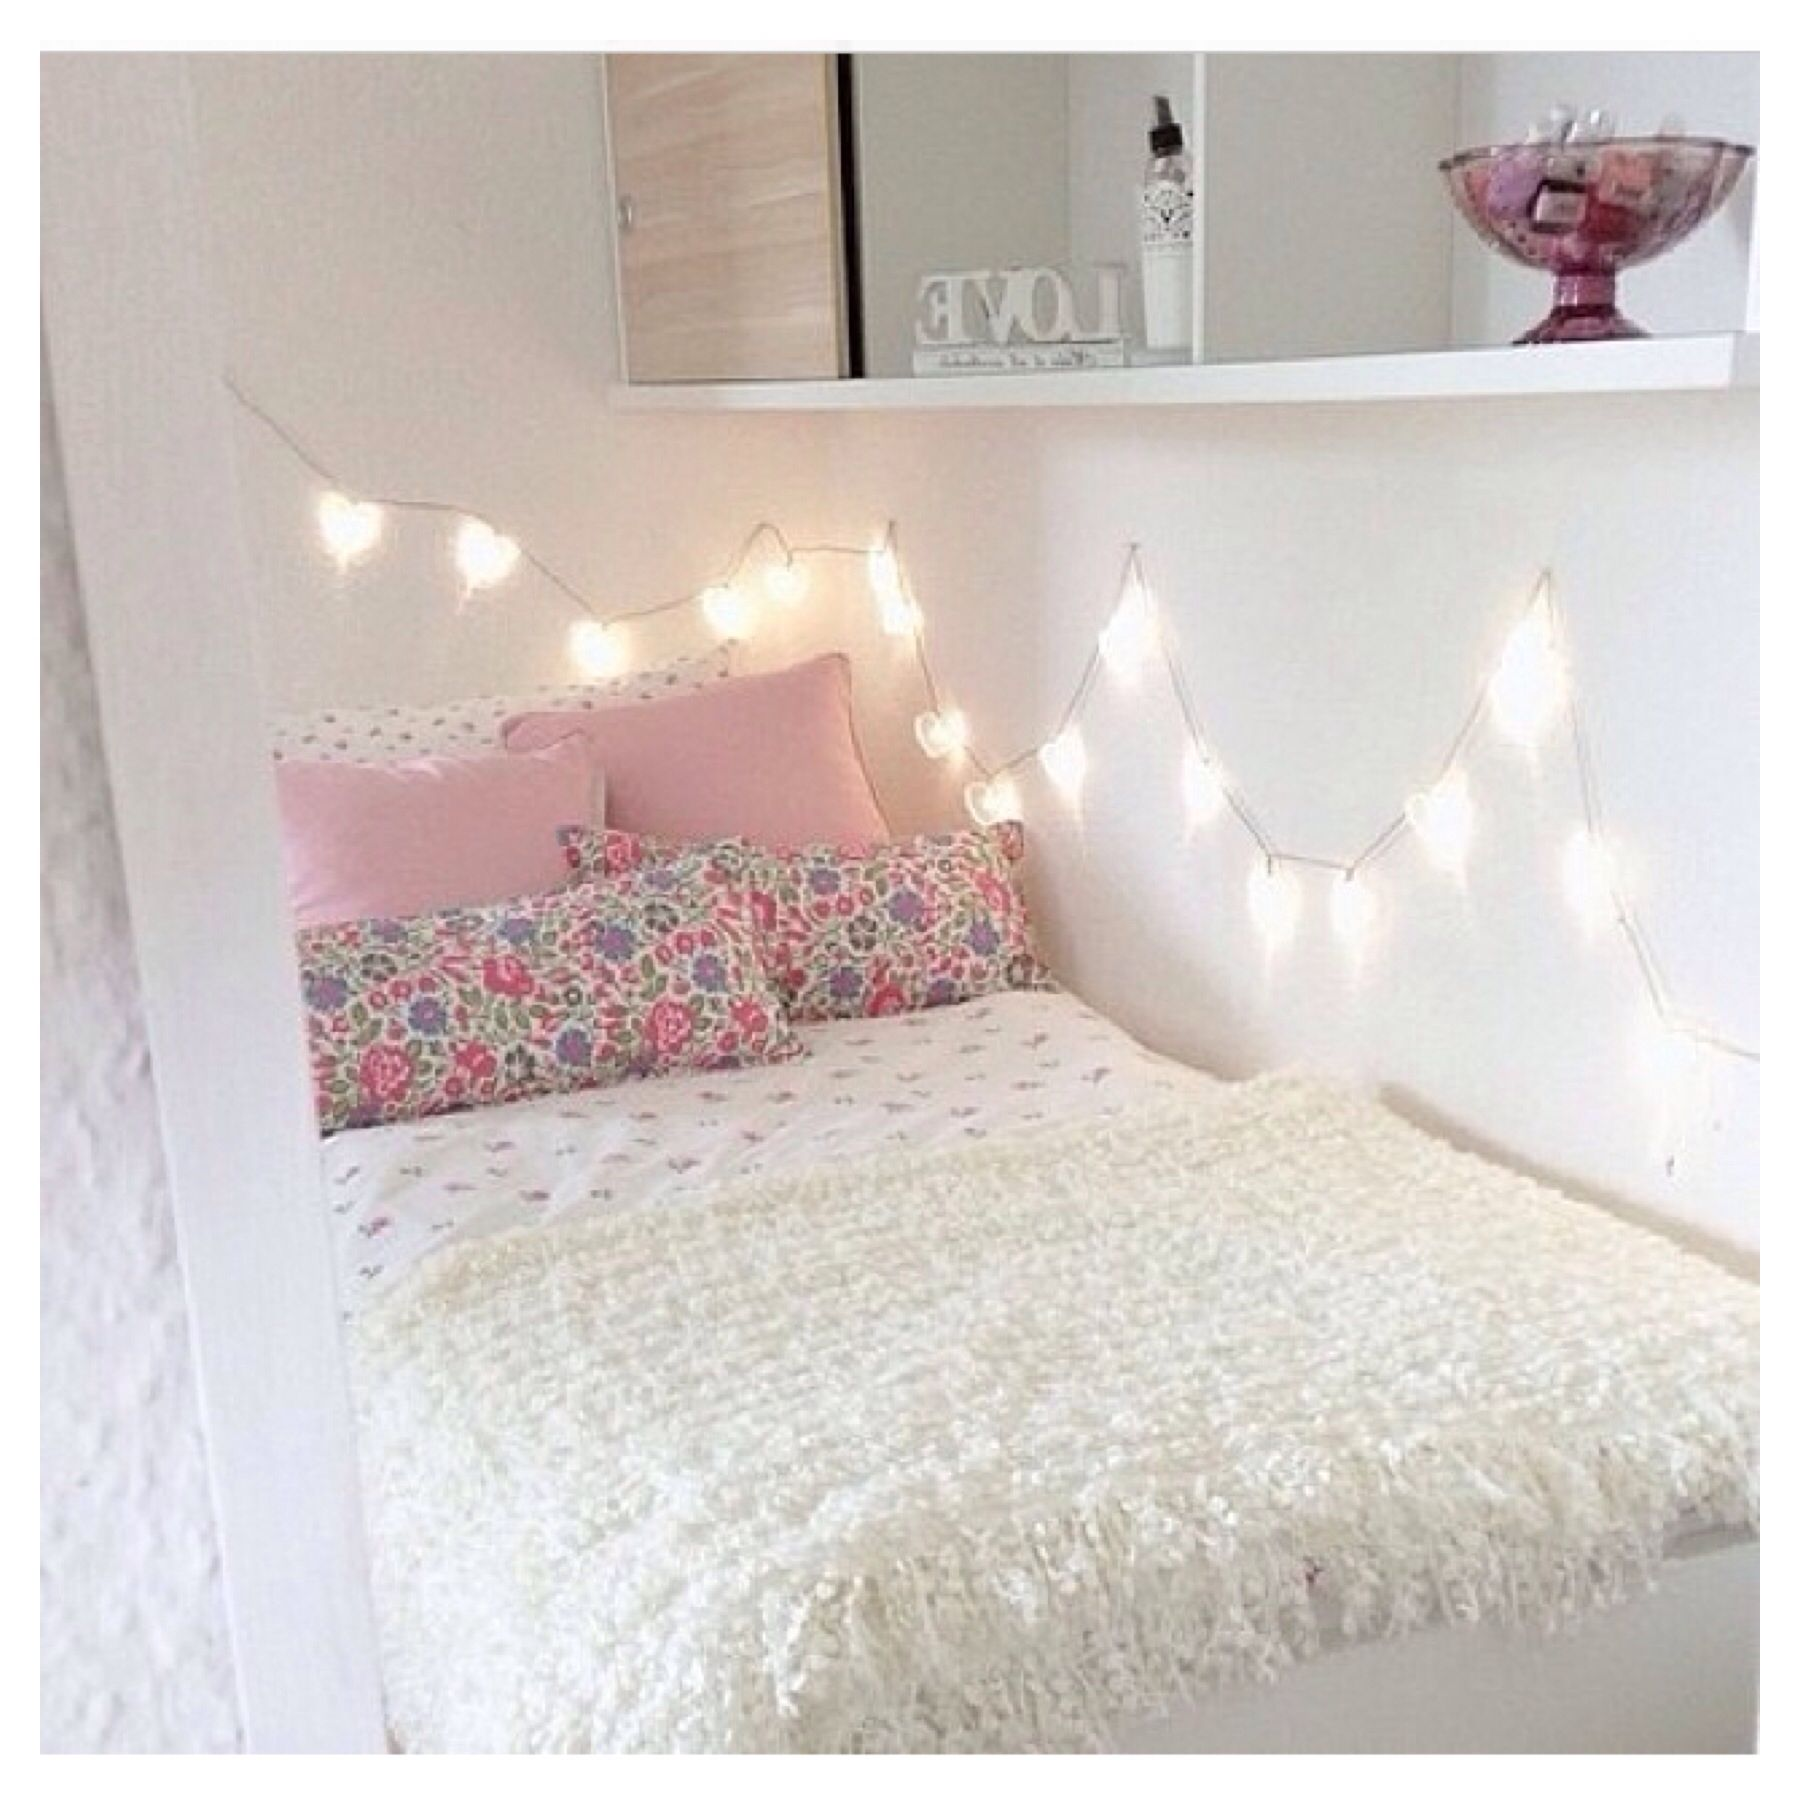 Fairy light room decor Ideas for Bedroom Pinterest